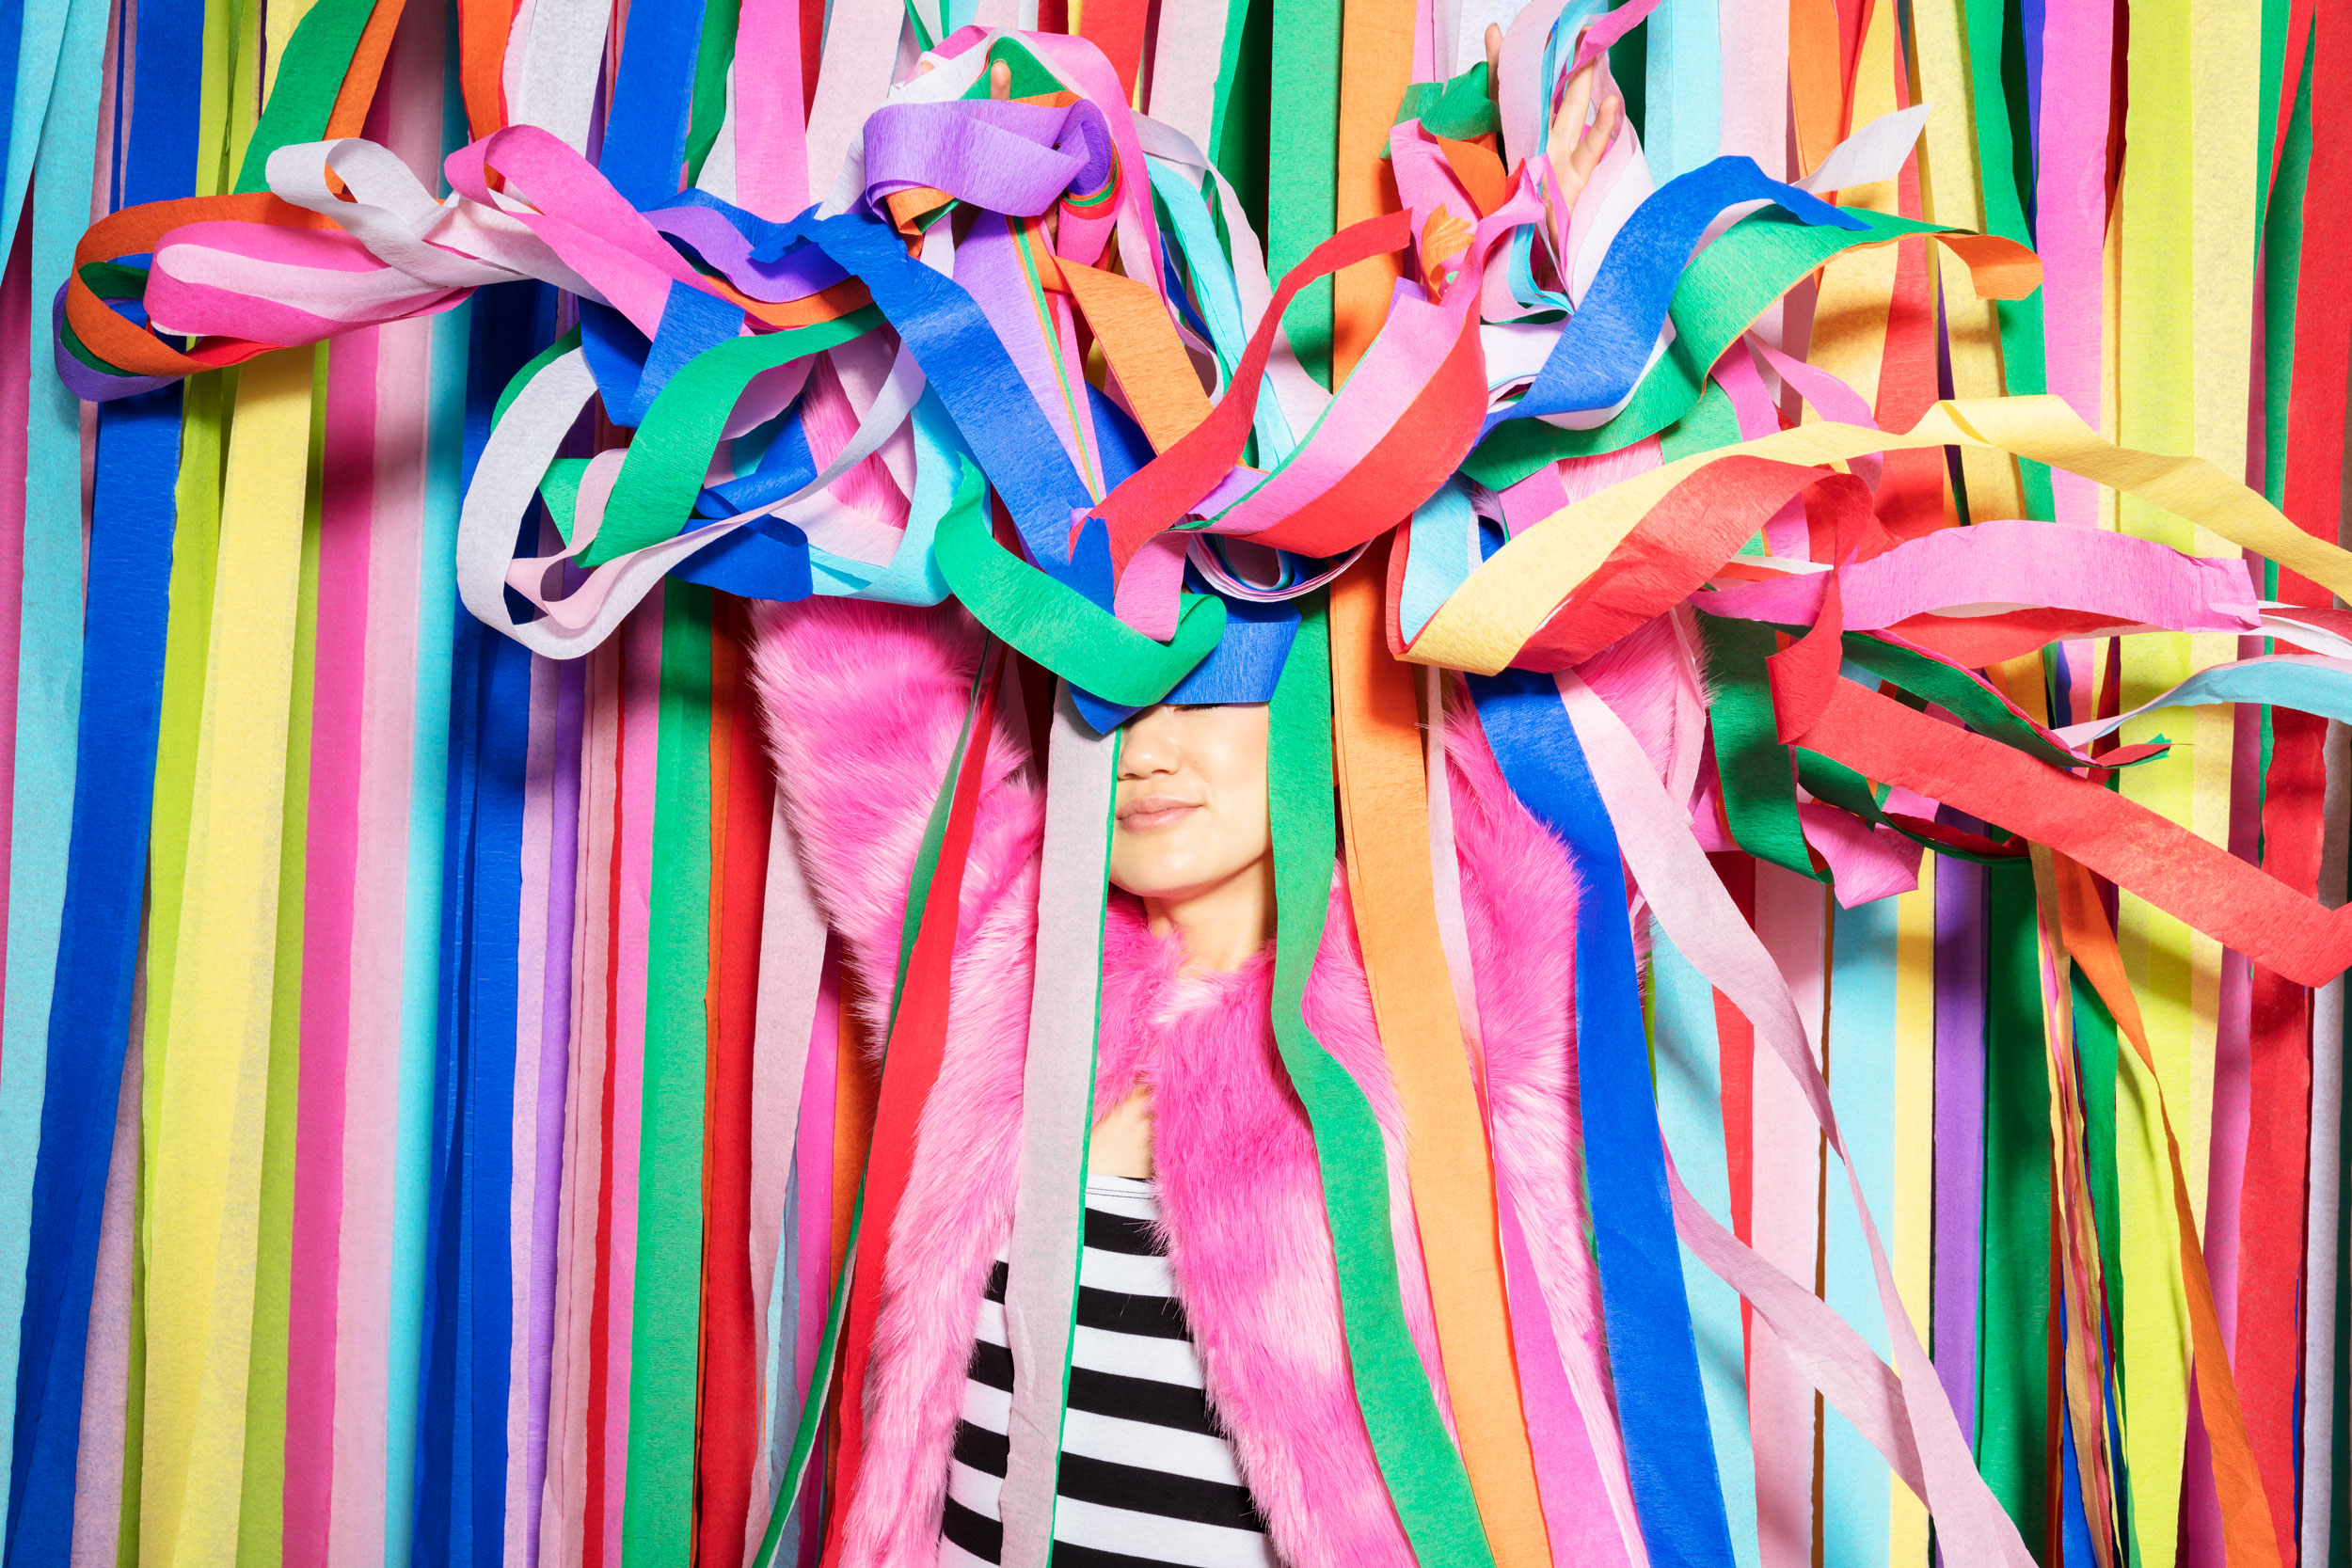 Girl laughing and smiling playing with streamers